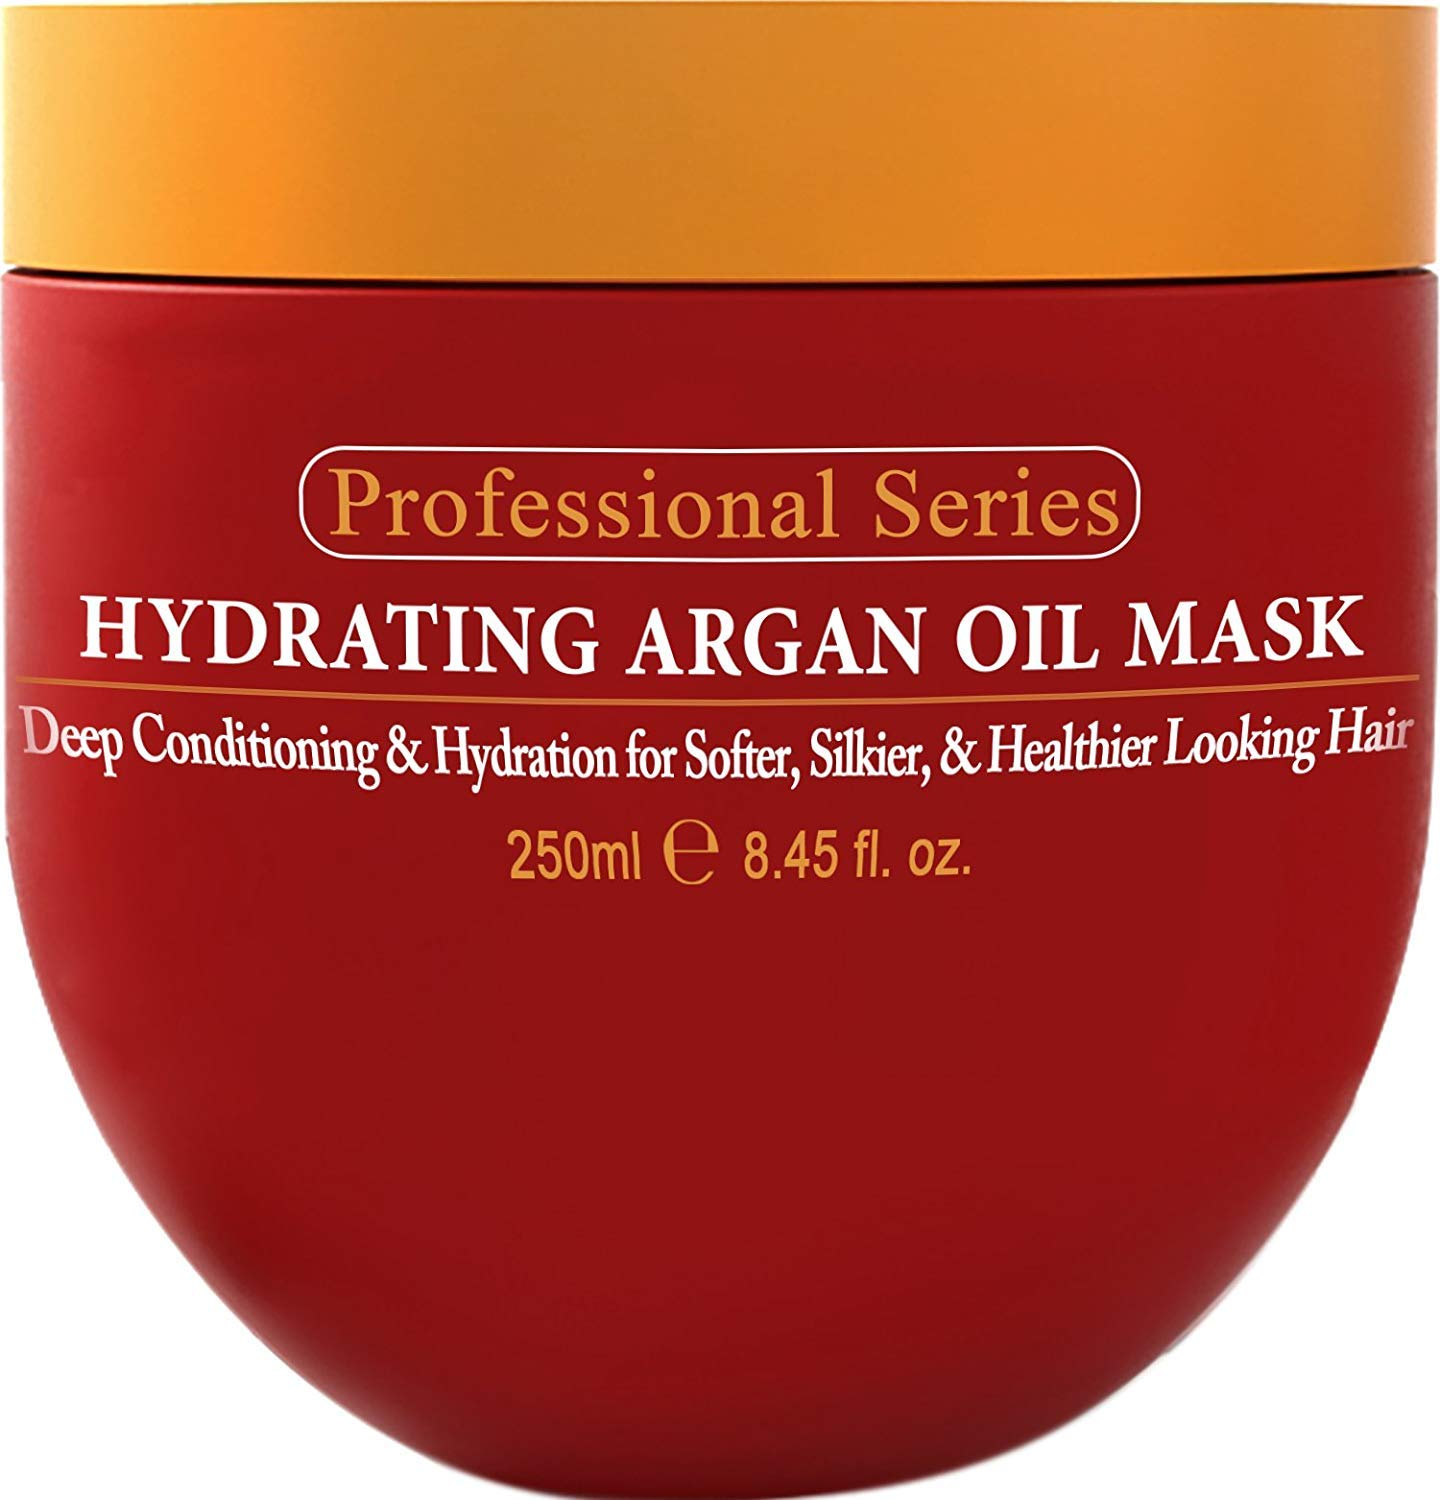 Hydrating Argan Oil Hair Mask and Deep Conditioner By Arvazallia for Dry or Damaged Hair Unbranded MAHM